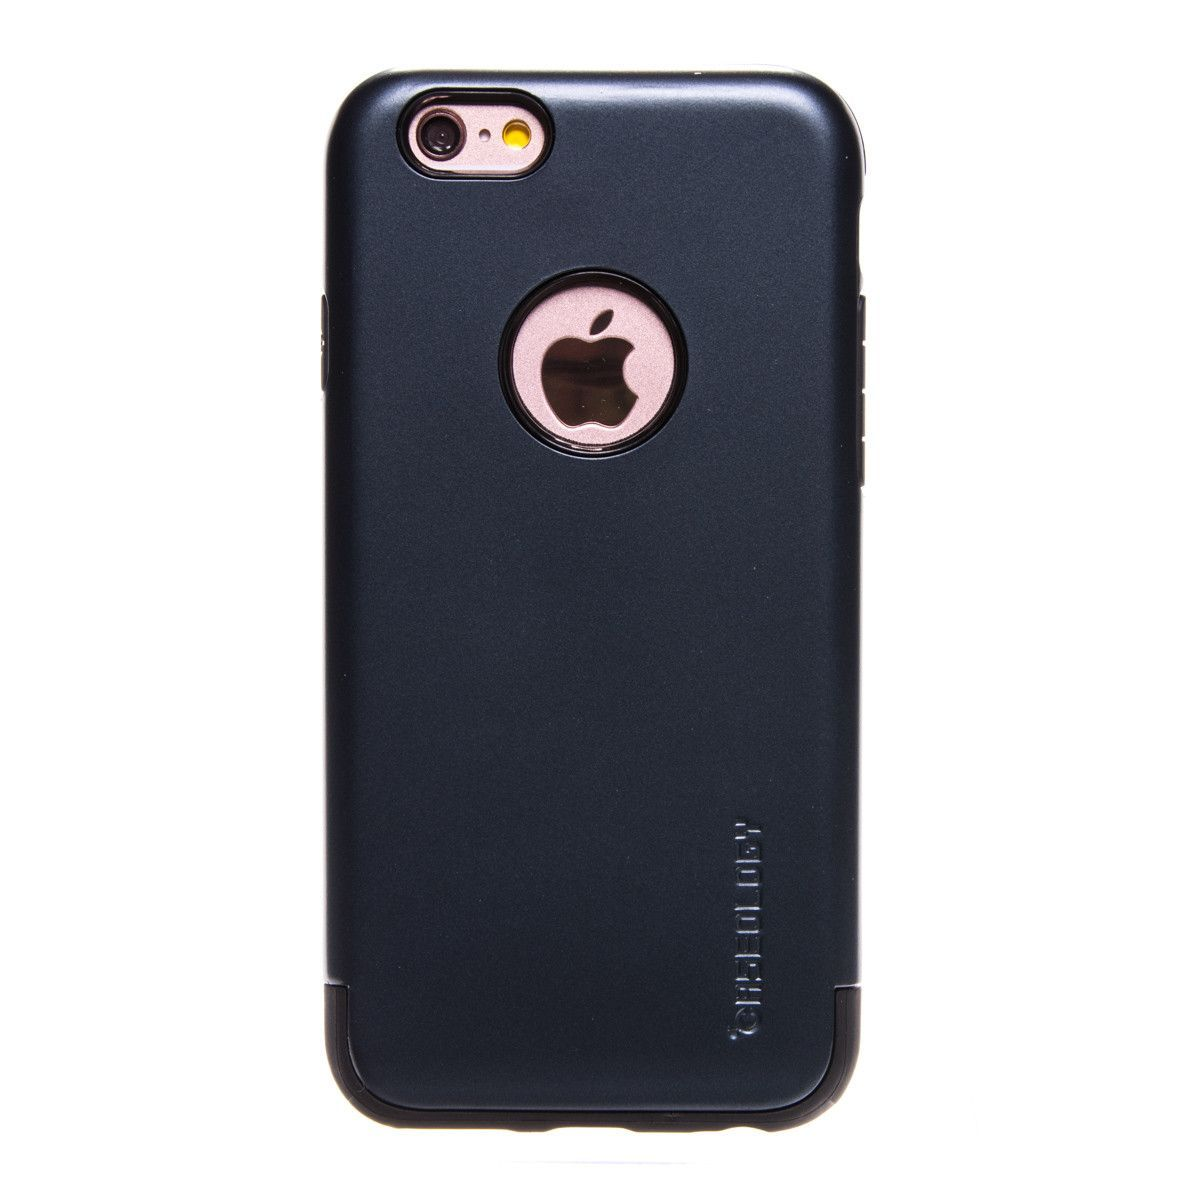 Caseology® [Sleek Armor] Dual Layer Impact Resistant [Shock Absorbent TPU] for Apple iPhone 6 / 6S